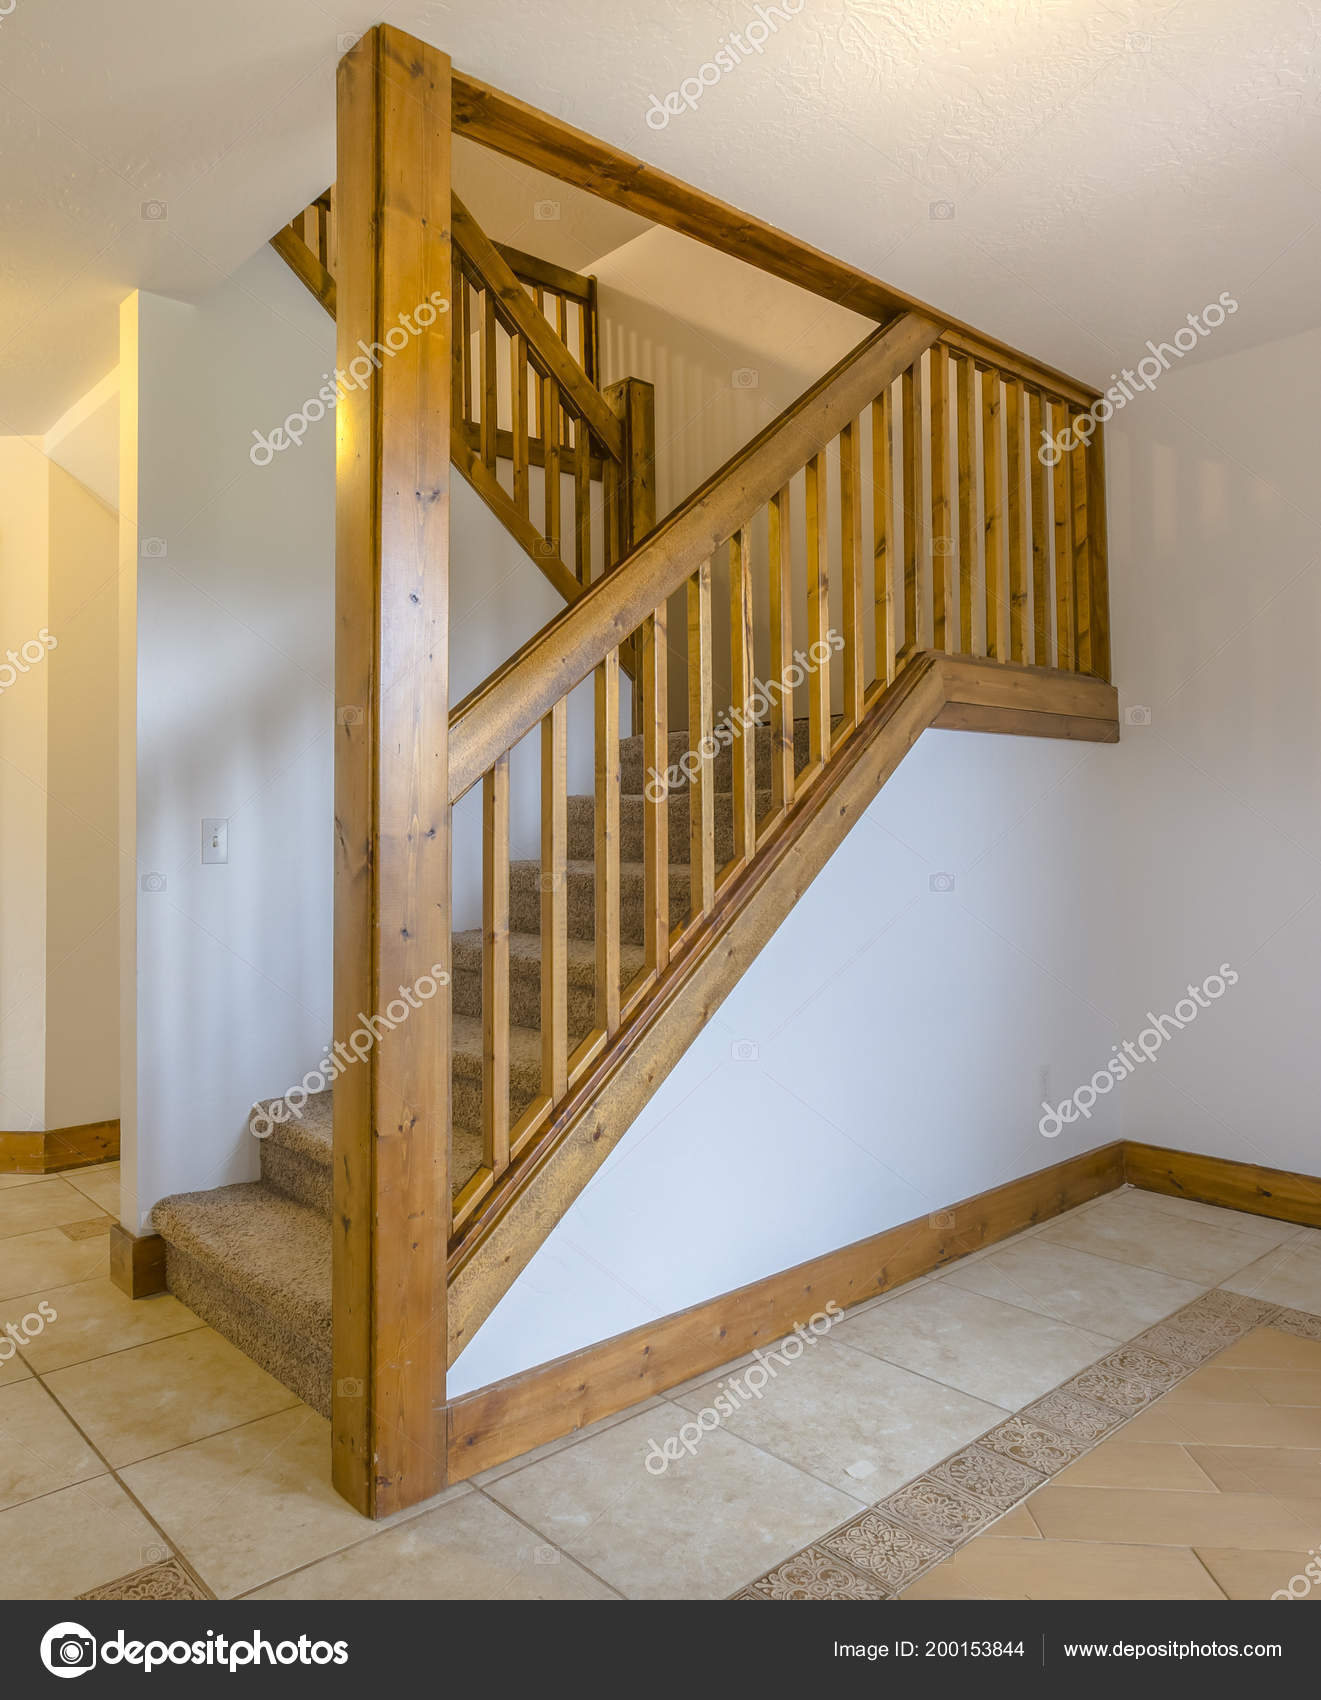 Wooden Banister And Column In Home Stock Photo